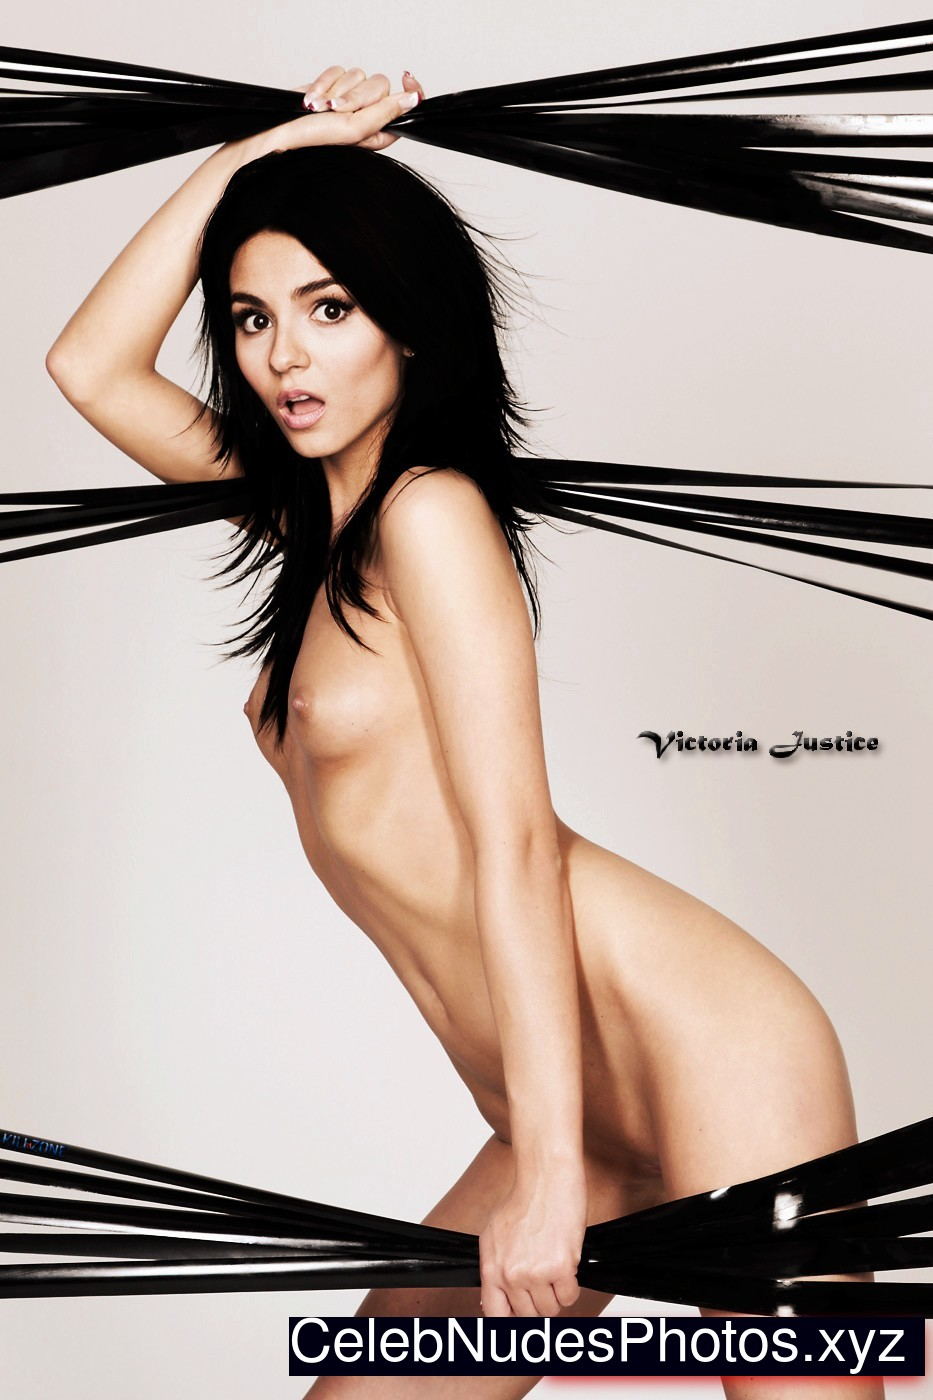 Victoria Justice Naked Celebrity Pic sexy 3